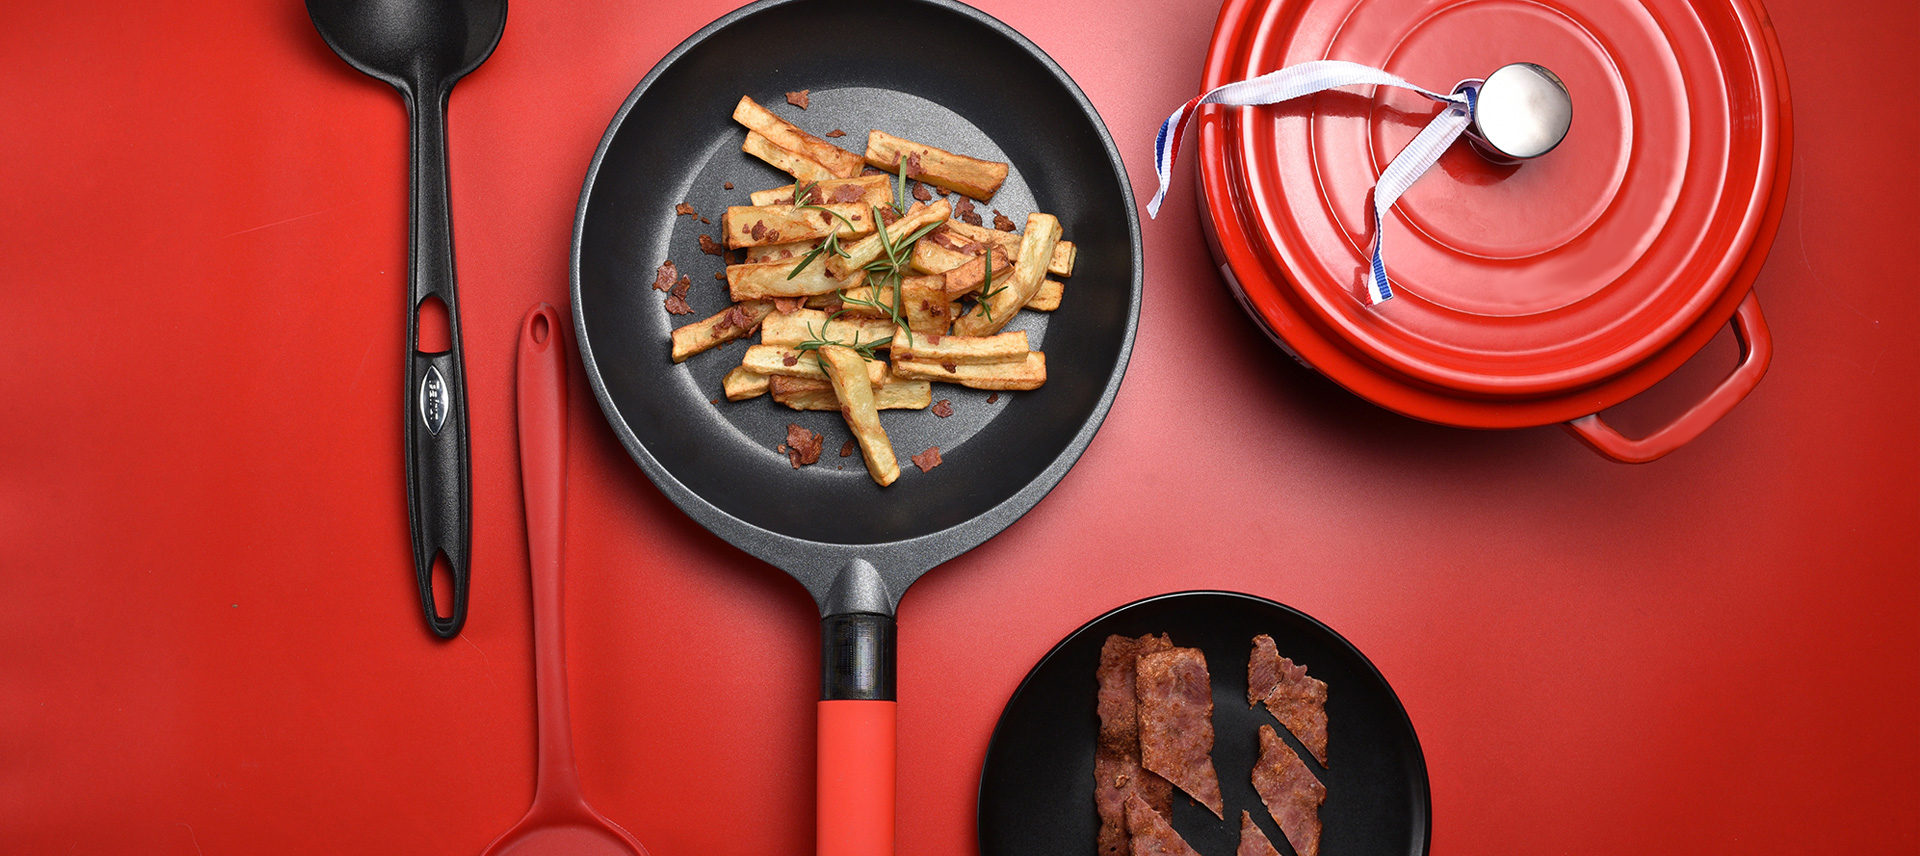 Zhejiang Zhongxin Cookware Co.,Ltd., - specializing in the production of die-cast aluminum non-stick pan